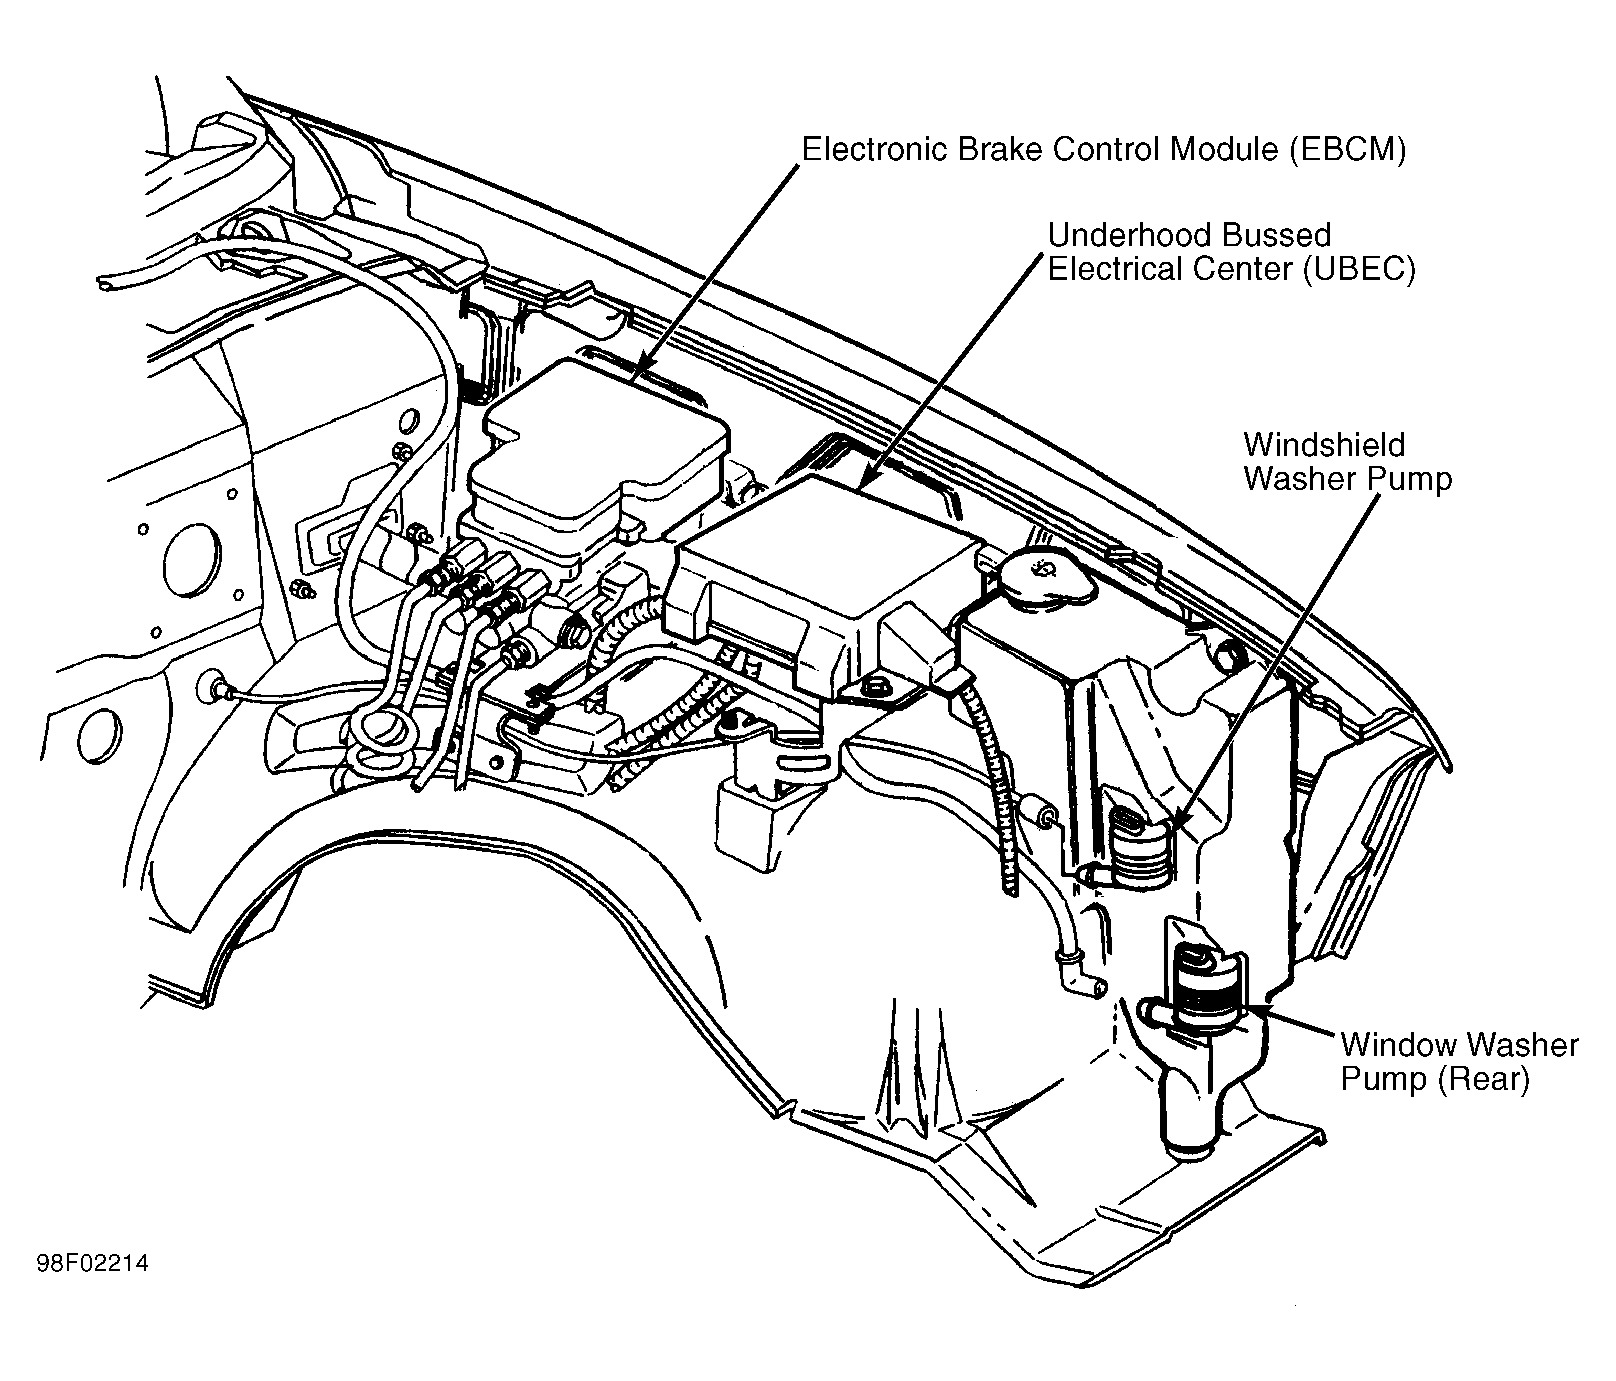 2001 Gmc Safari Fuse Box Layout Wiring Diagrams Diagram 1998 Sonoma Detailed Schematics Rh Antonartgallery Com Single